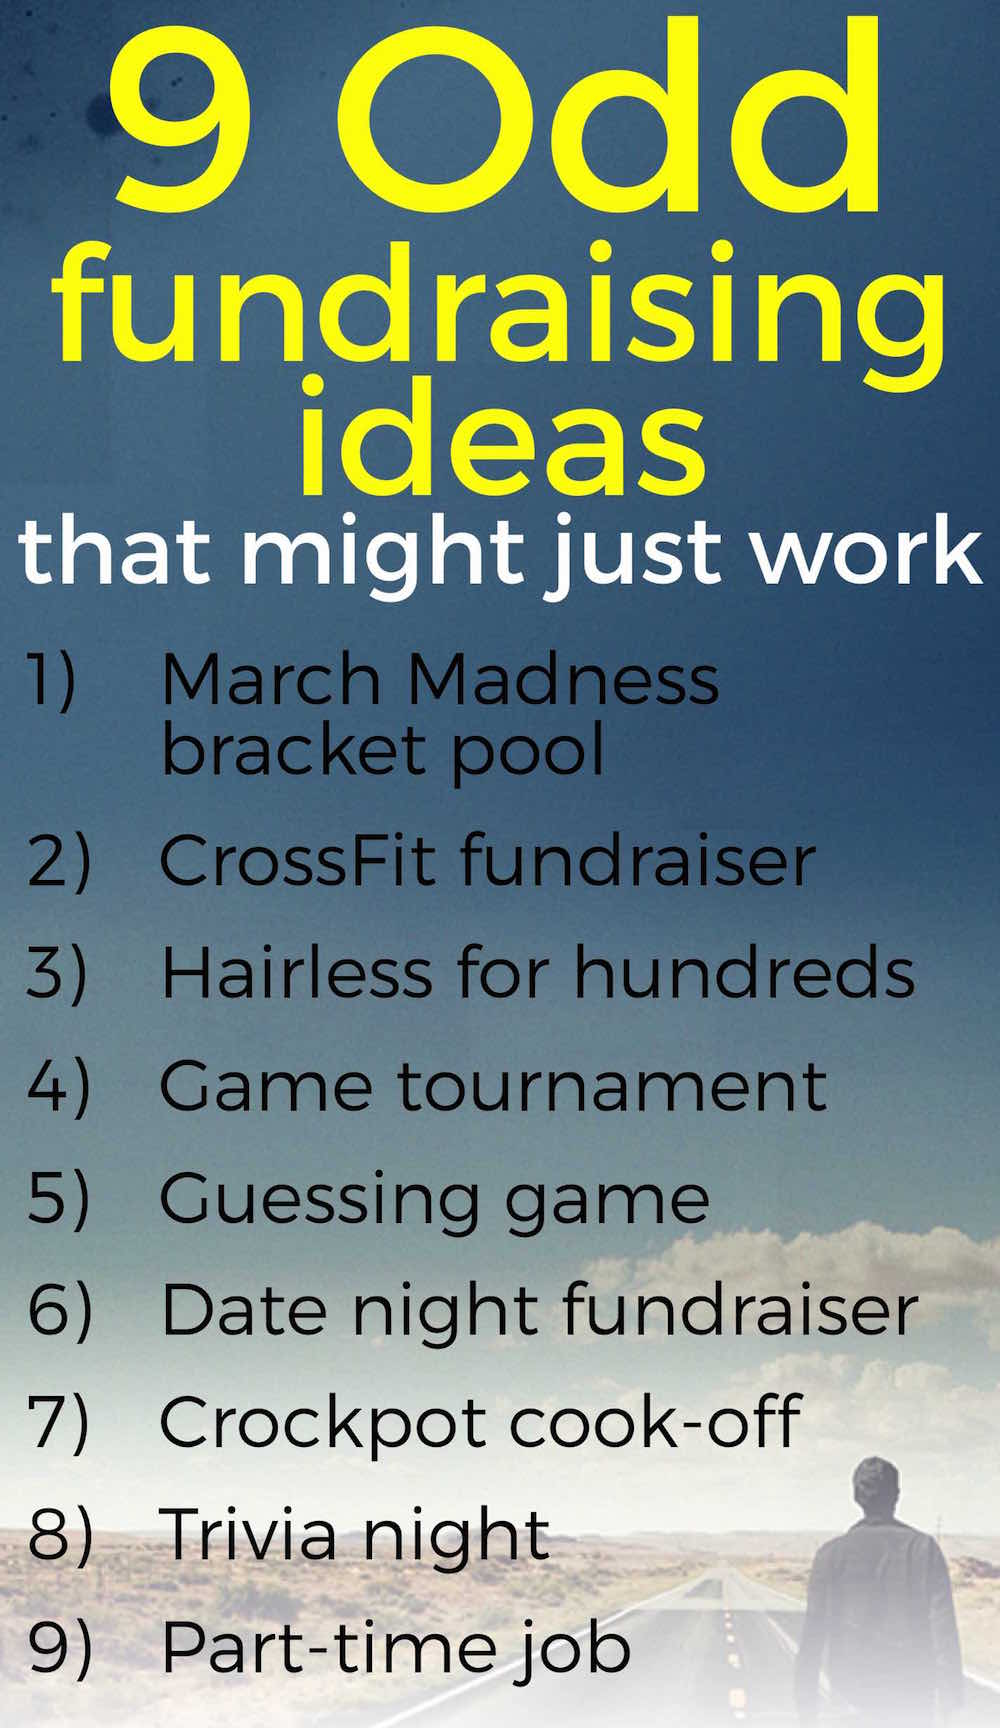 9 odd fundraising ideas that might just work